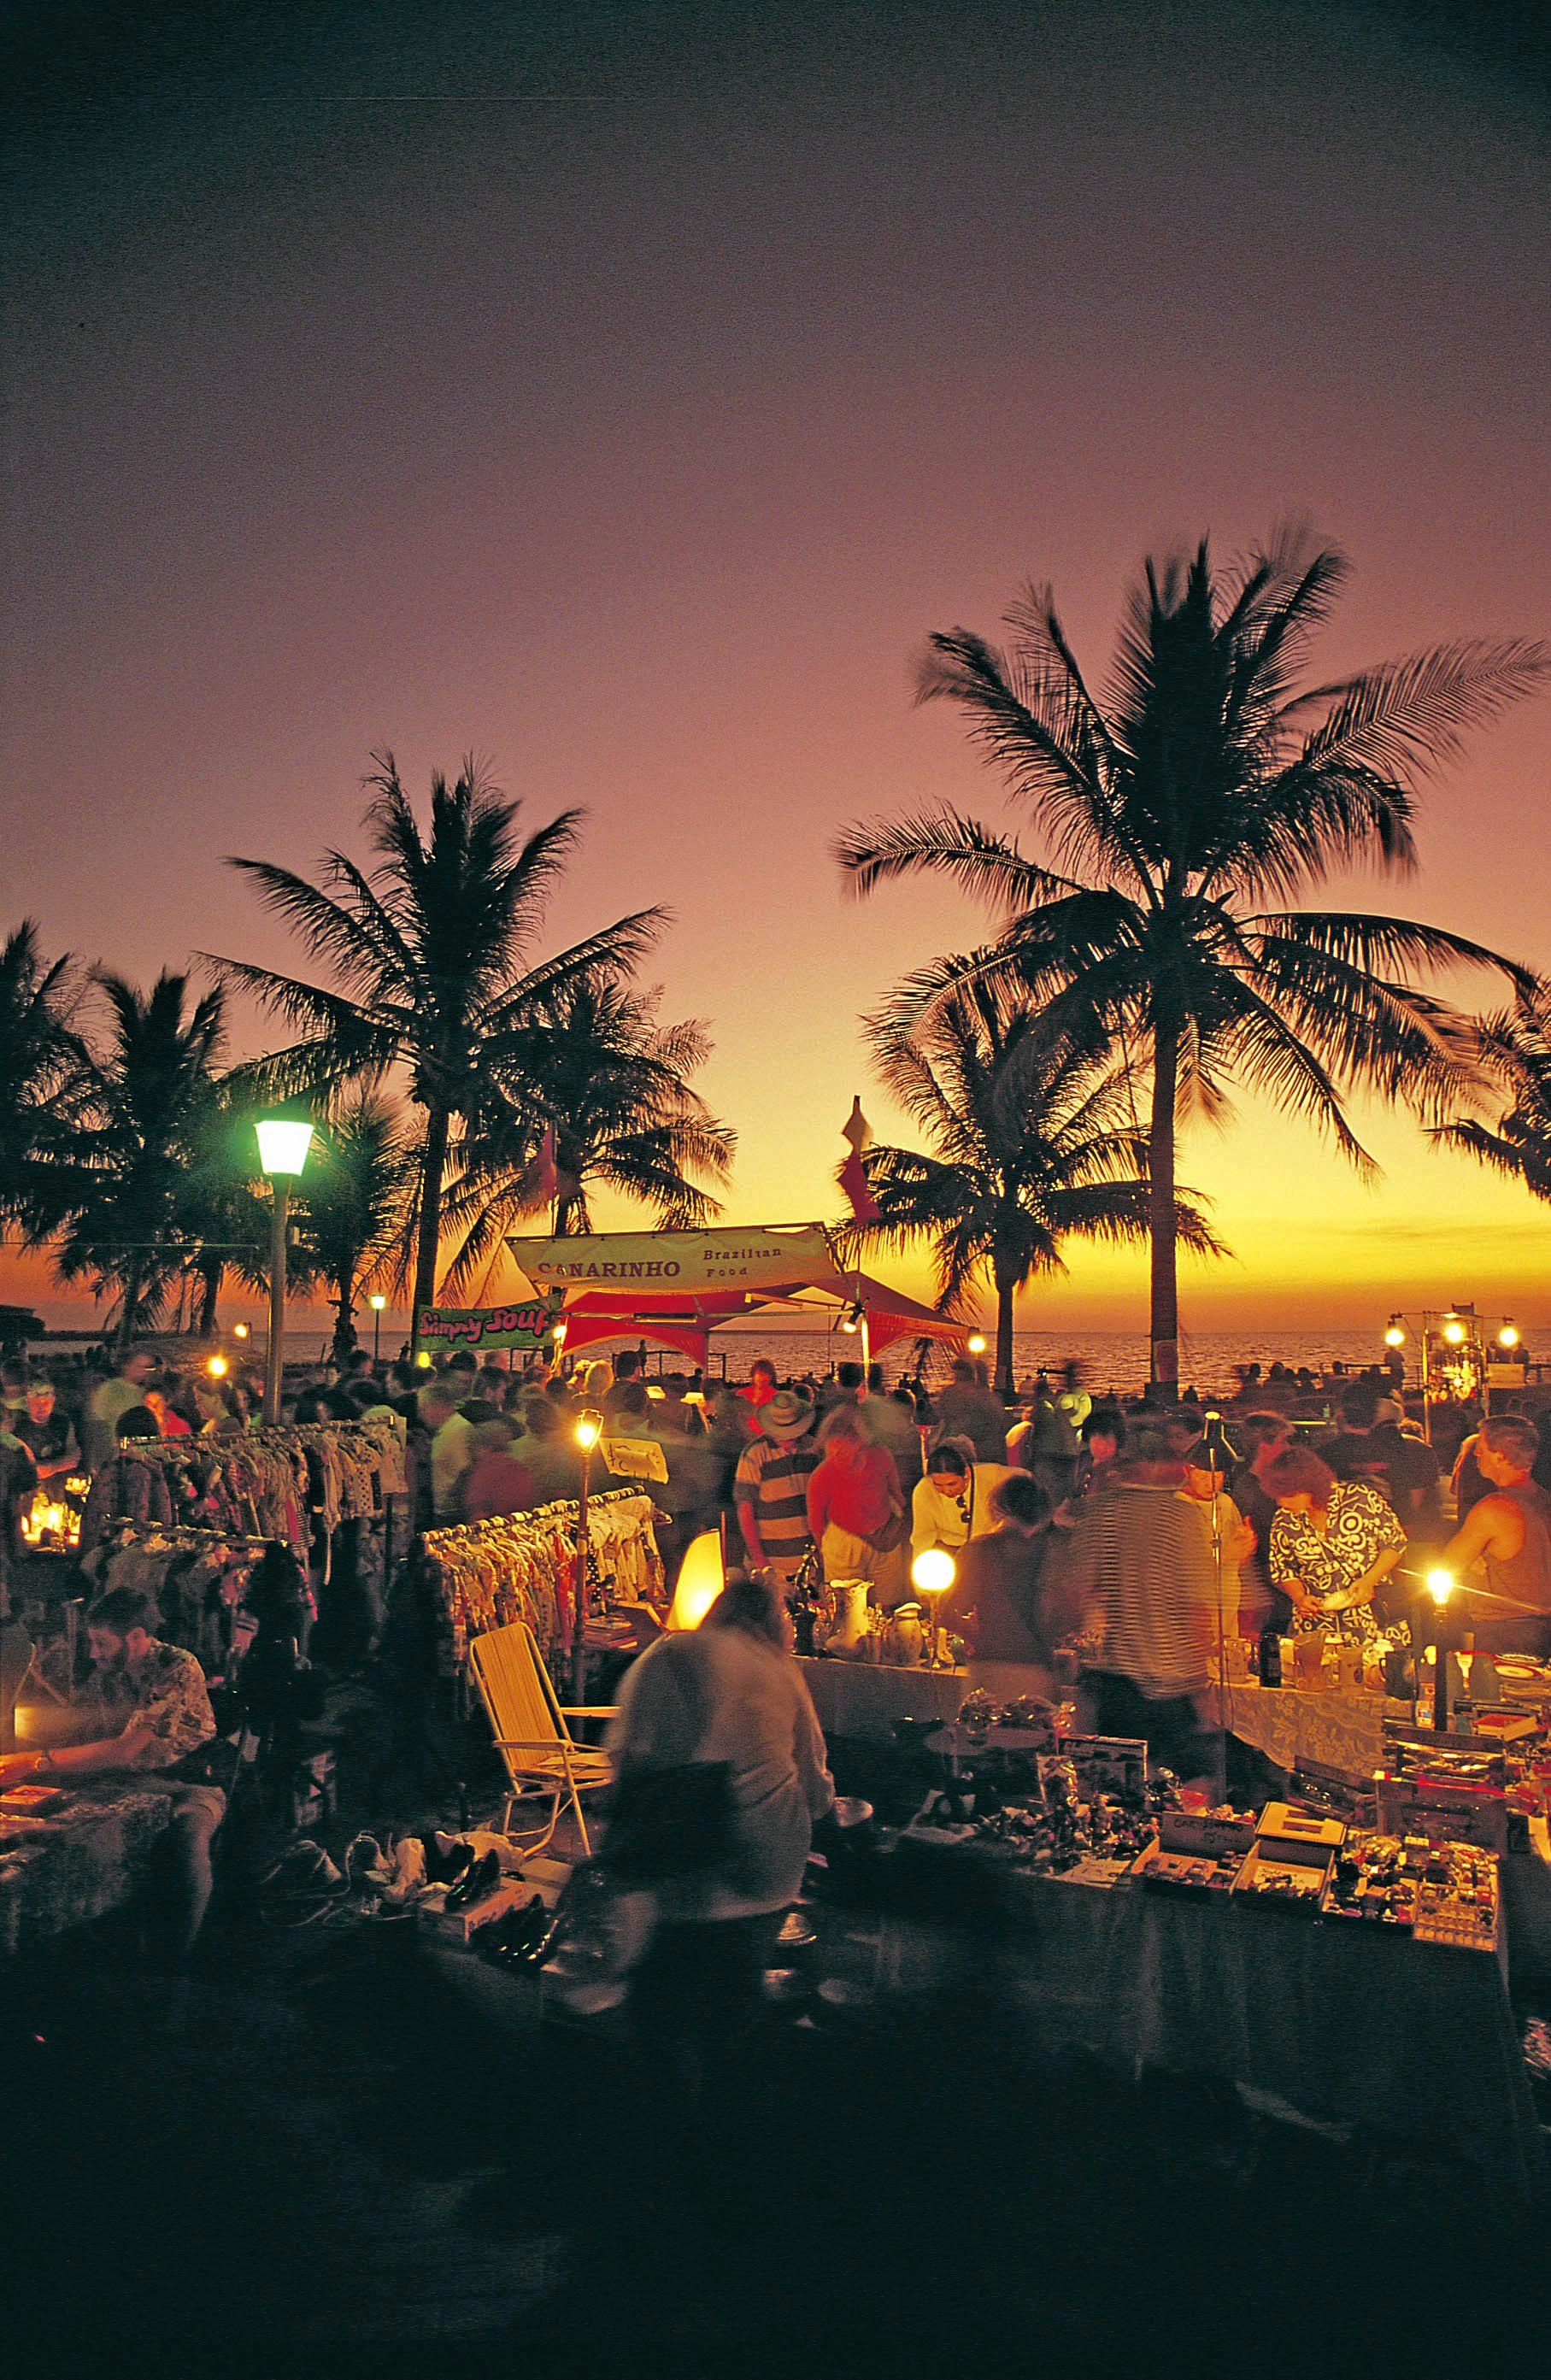 DISCOVER NT: The Mindil Beach Sunset Markets in Darwin.